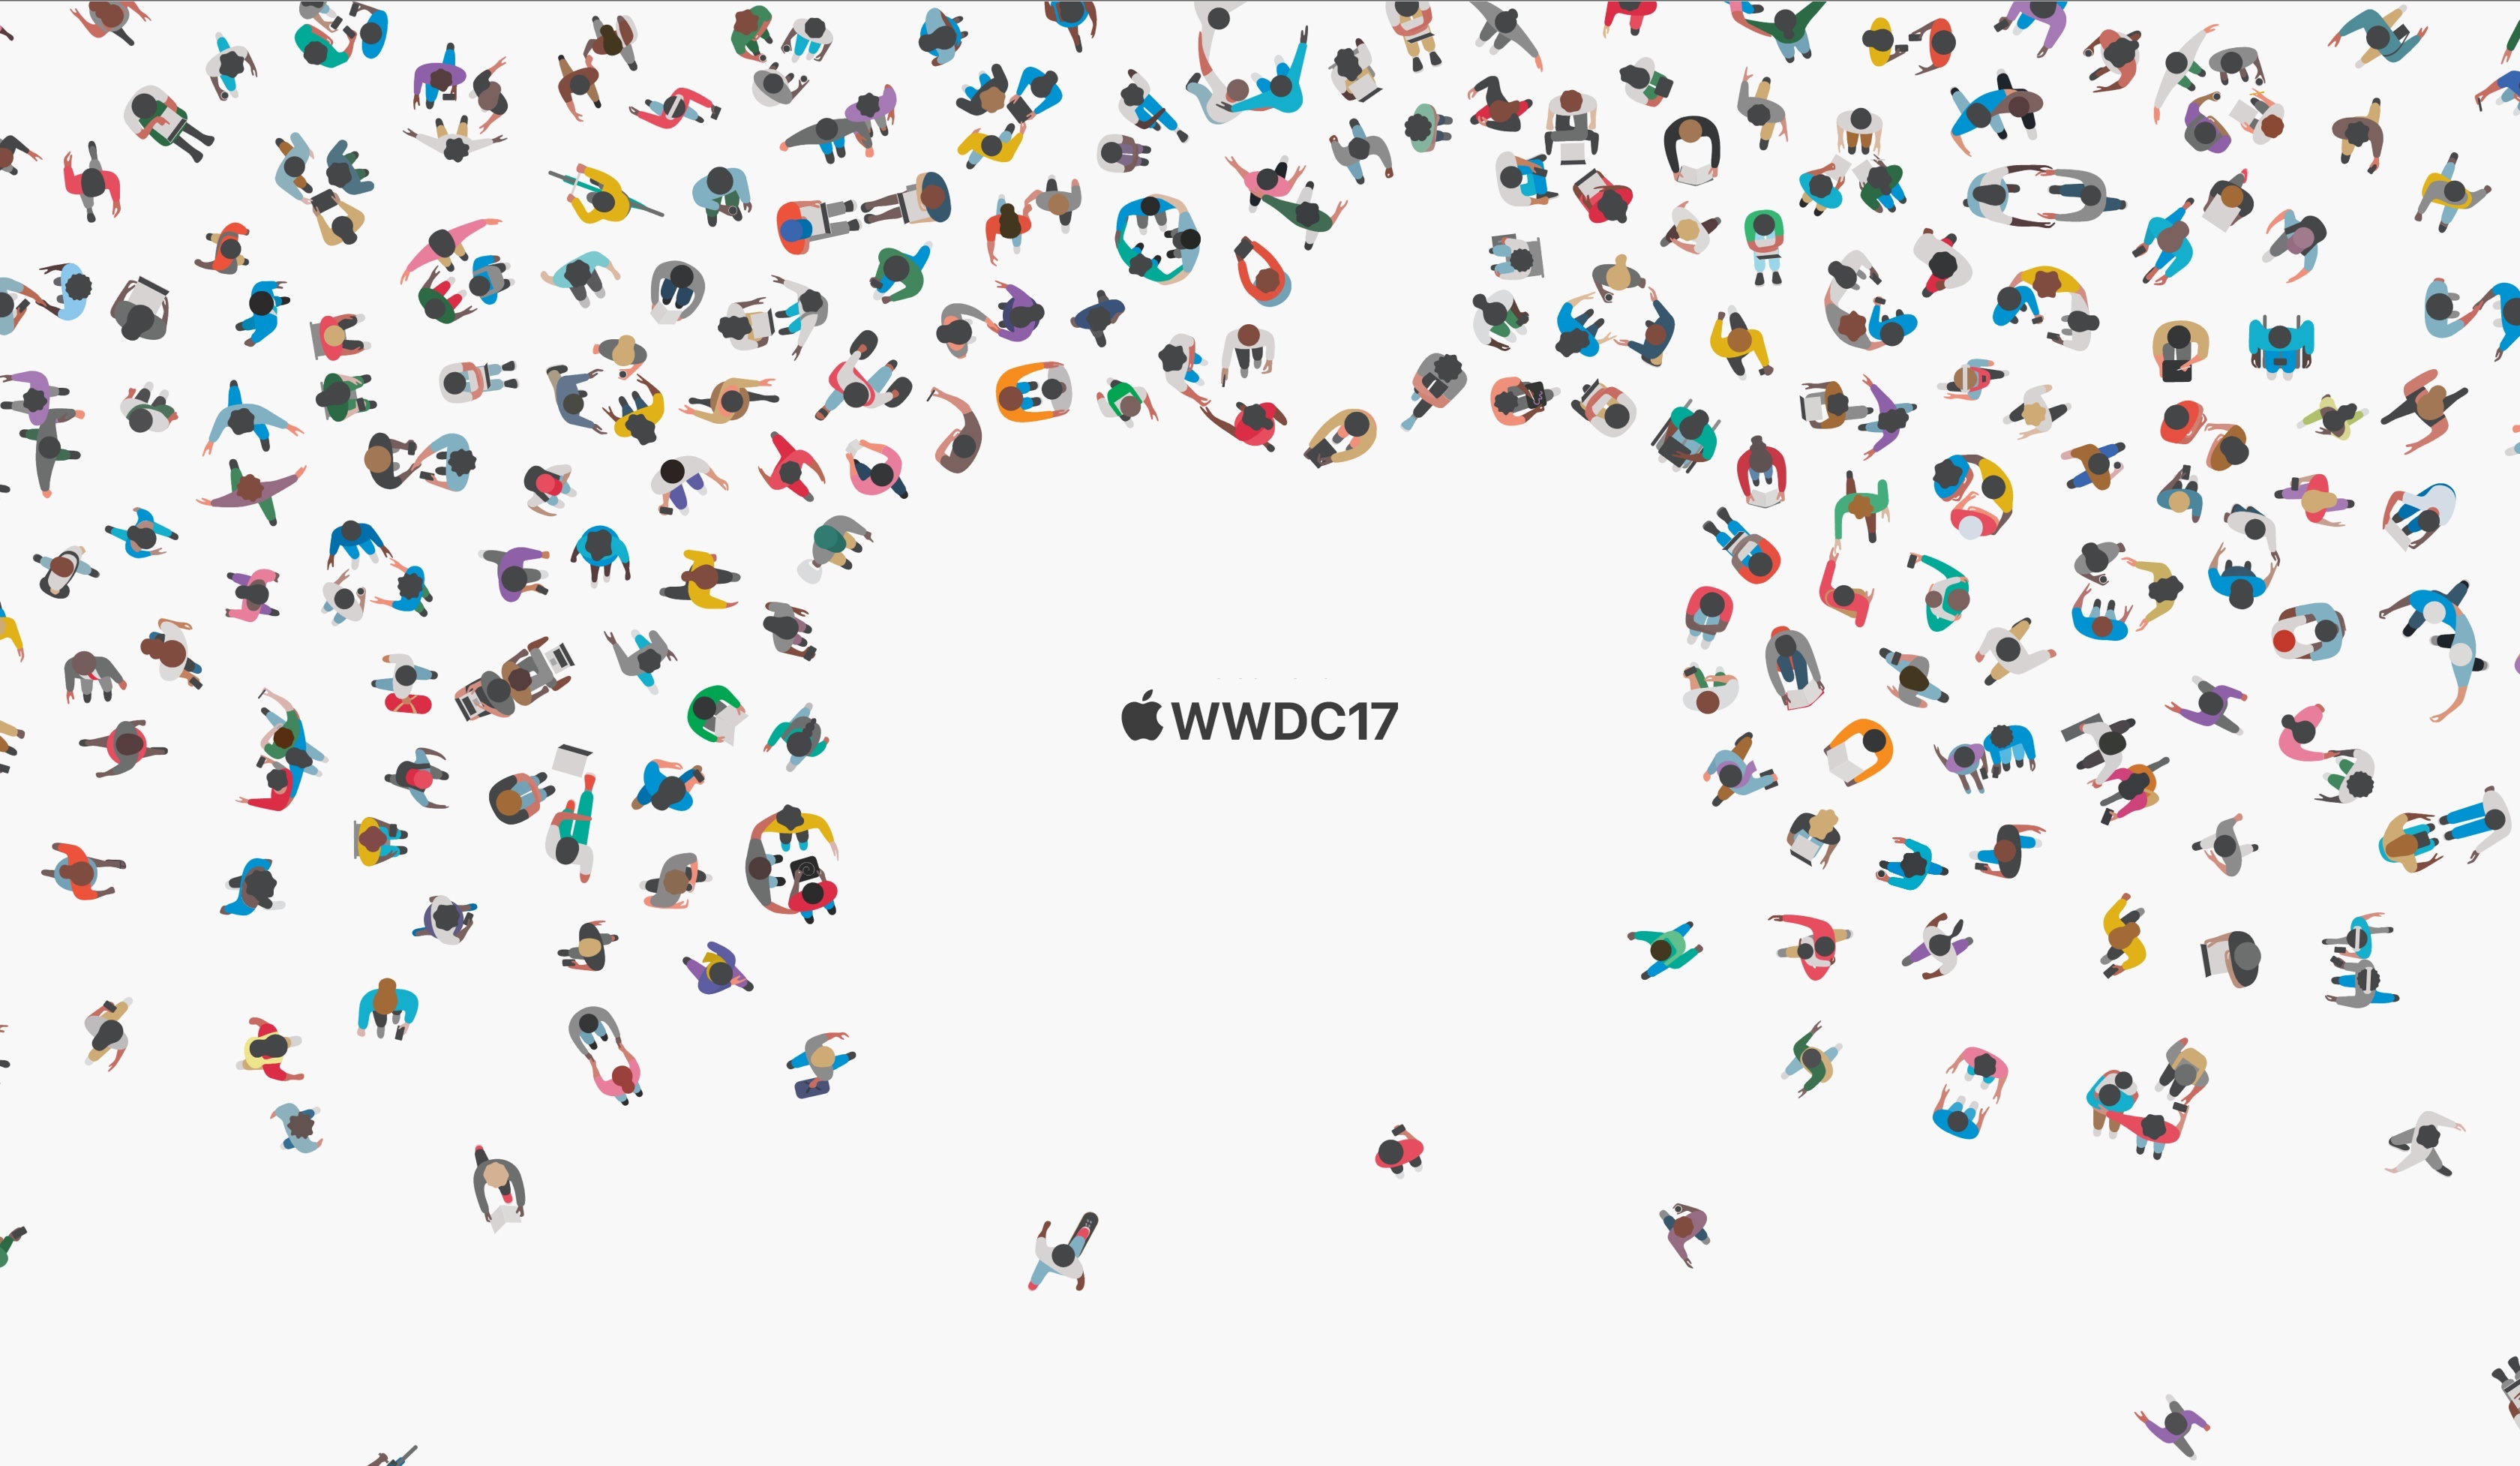 WWDC 17 Wallpapers For IPhone, IPad And Mac [Download